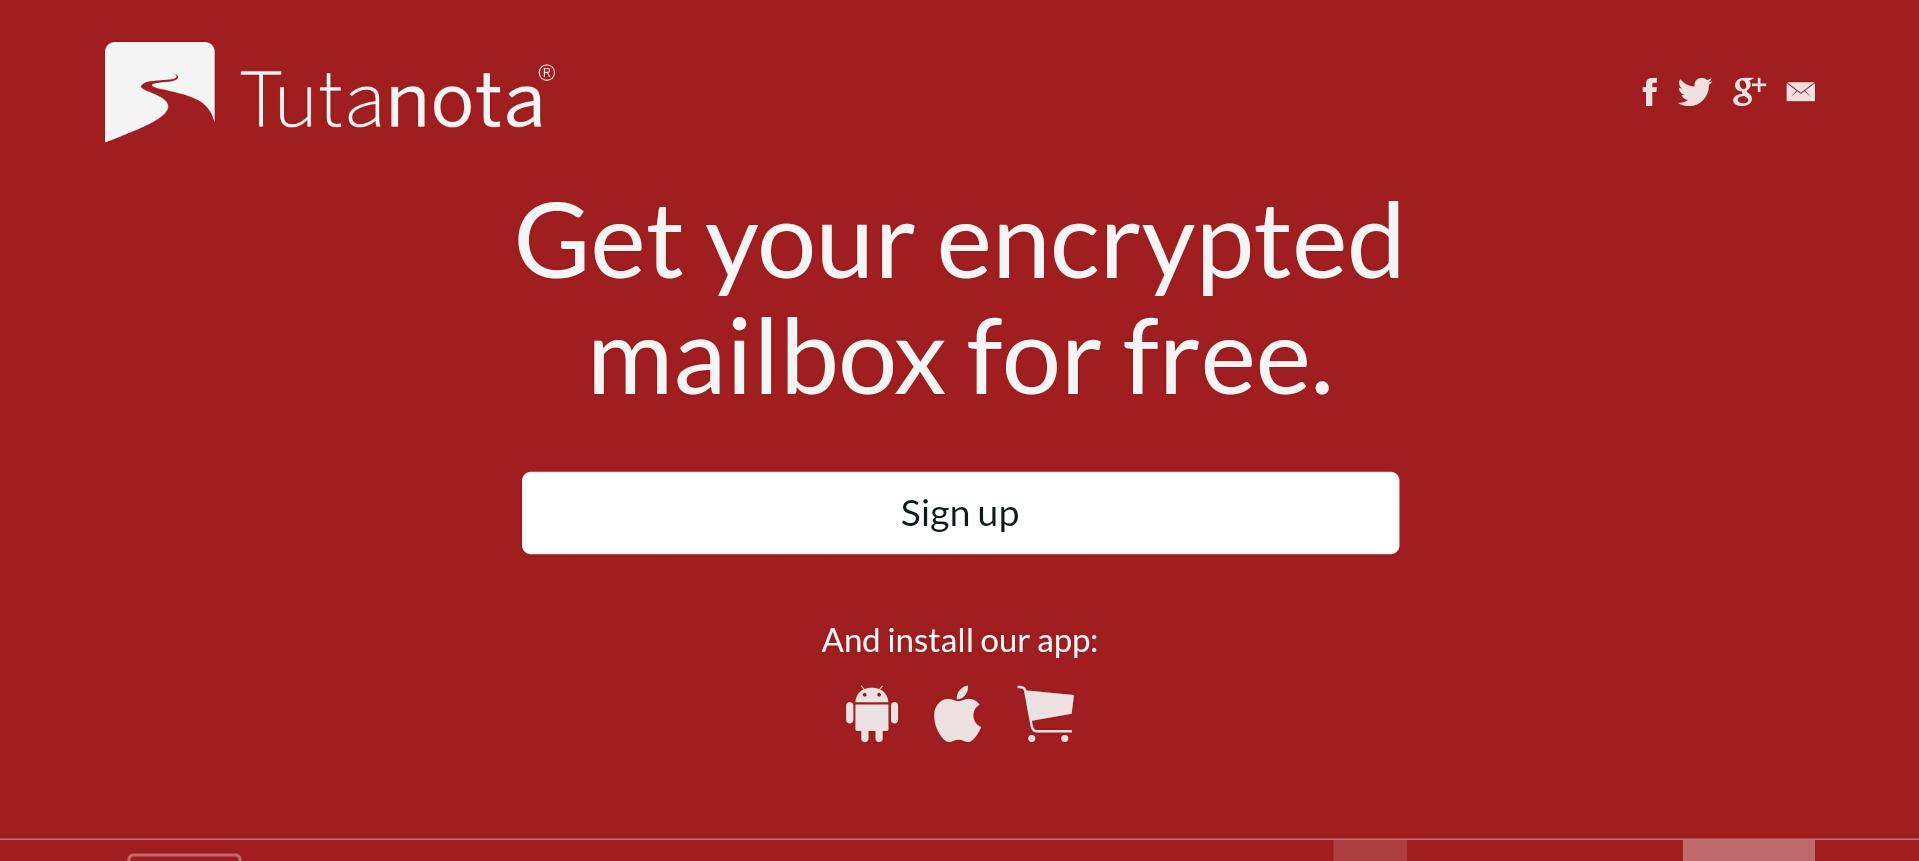 Tutanota – Start Using Free Encrypted Email